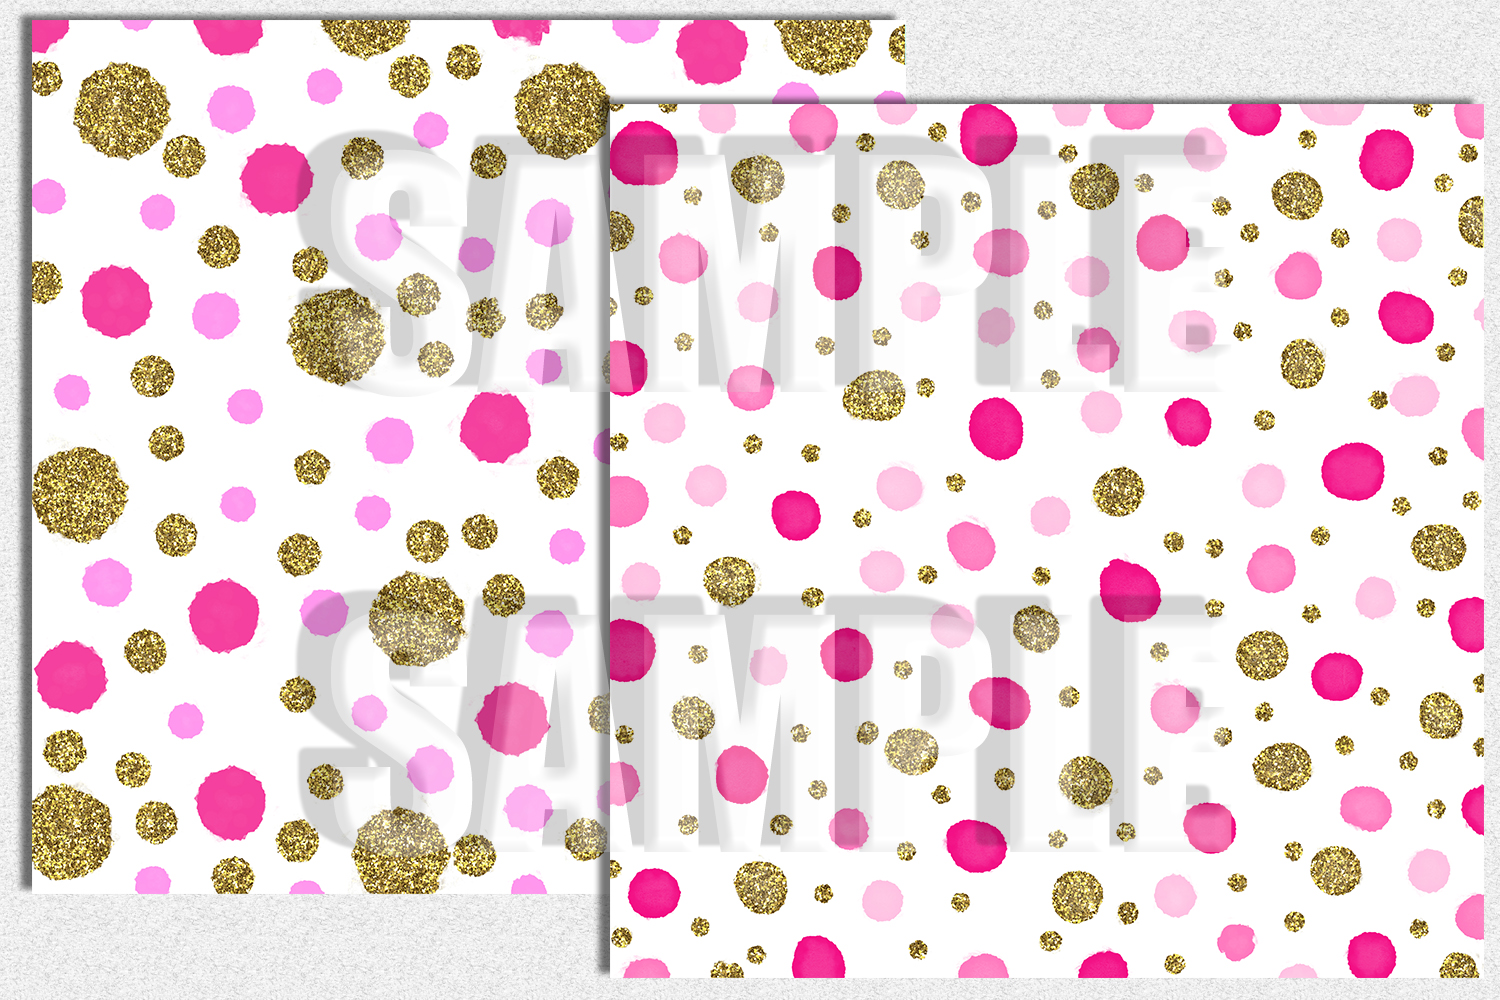 Confetti Digital Paper, Pink and Gold, Digital Background example image 2